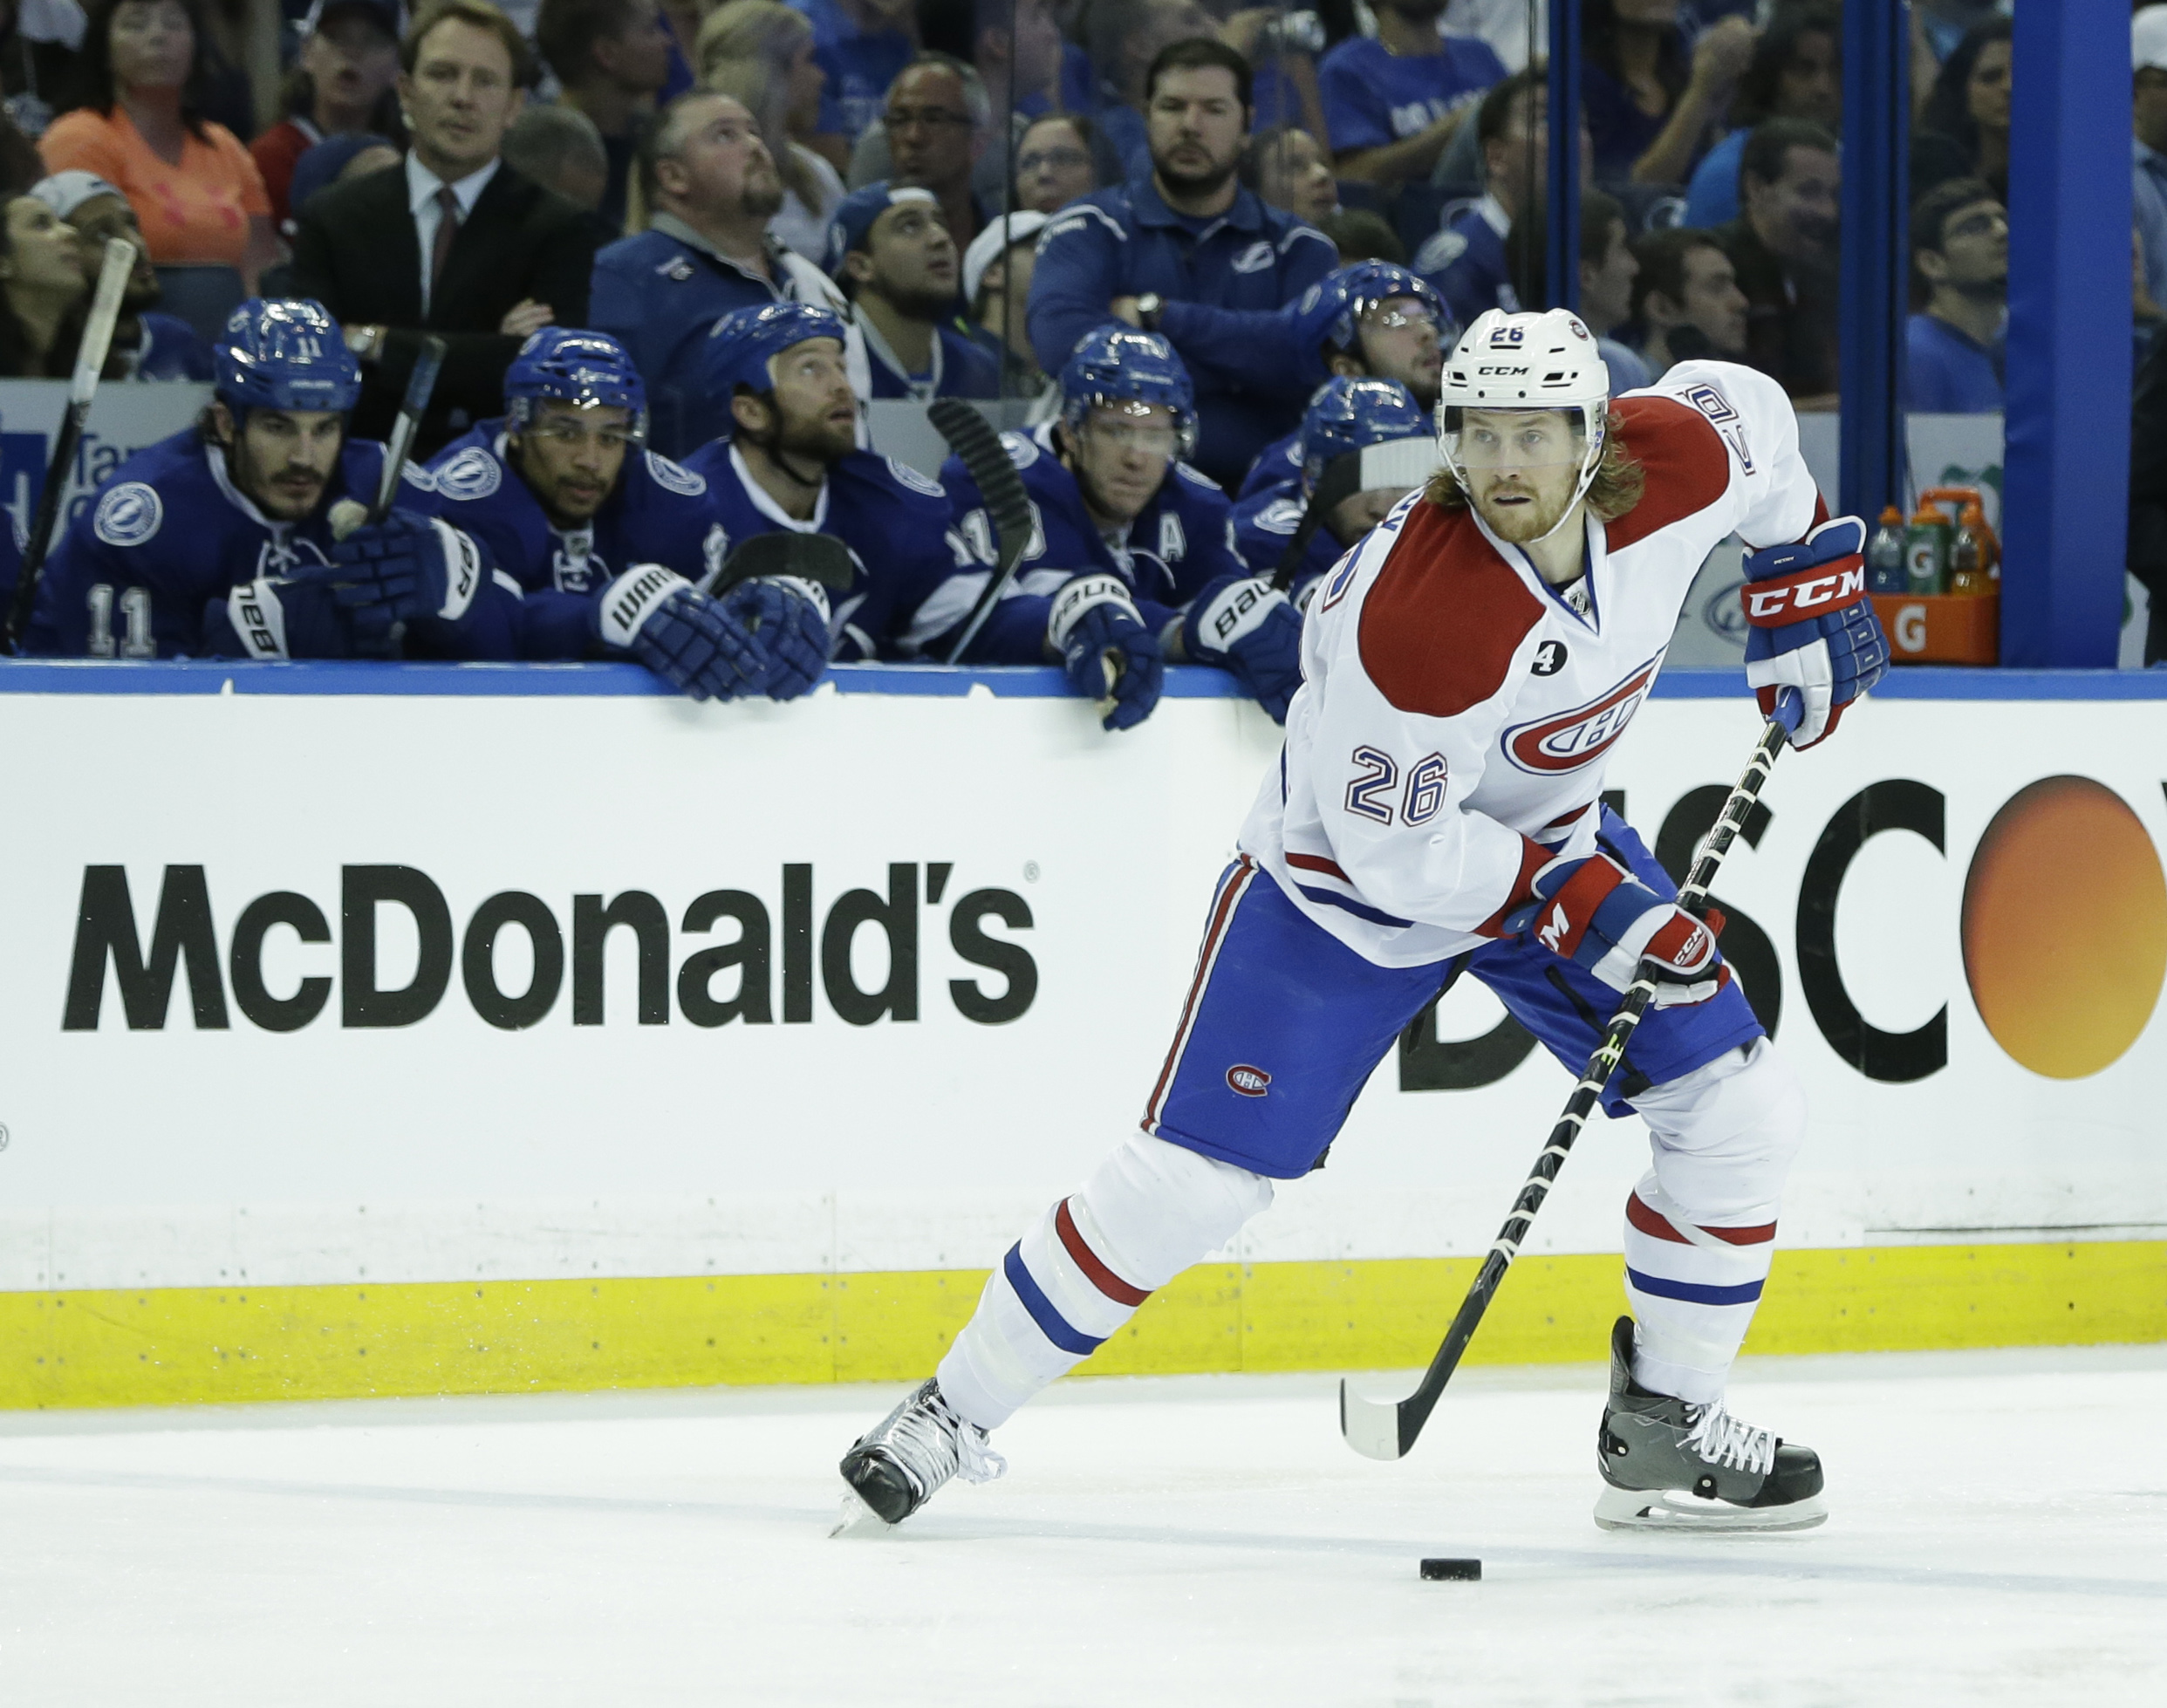 Montreal Canadiens defenseman Jeff Petry looks for an open teammate during the first period of Game 3 NHL second round playoff hockey action, Wednesday, May 6, 2015, in Tampa, Fla. (AP Photo/Wilfredo Lee)